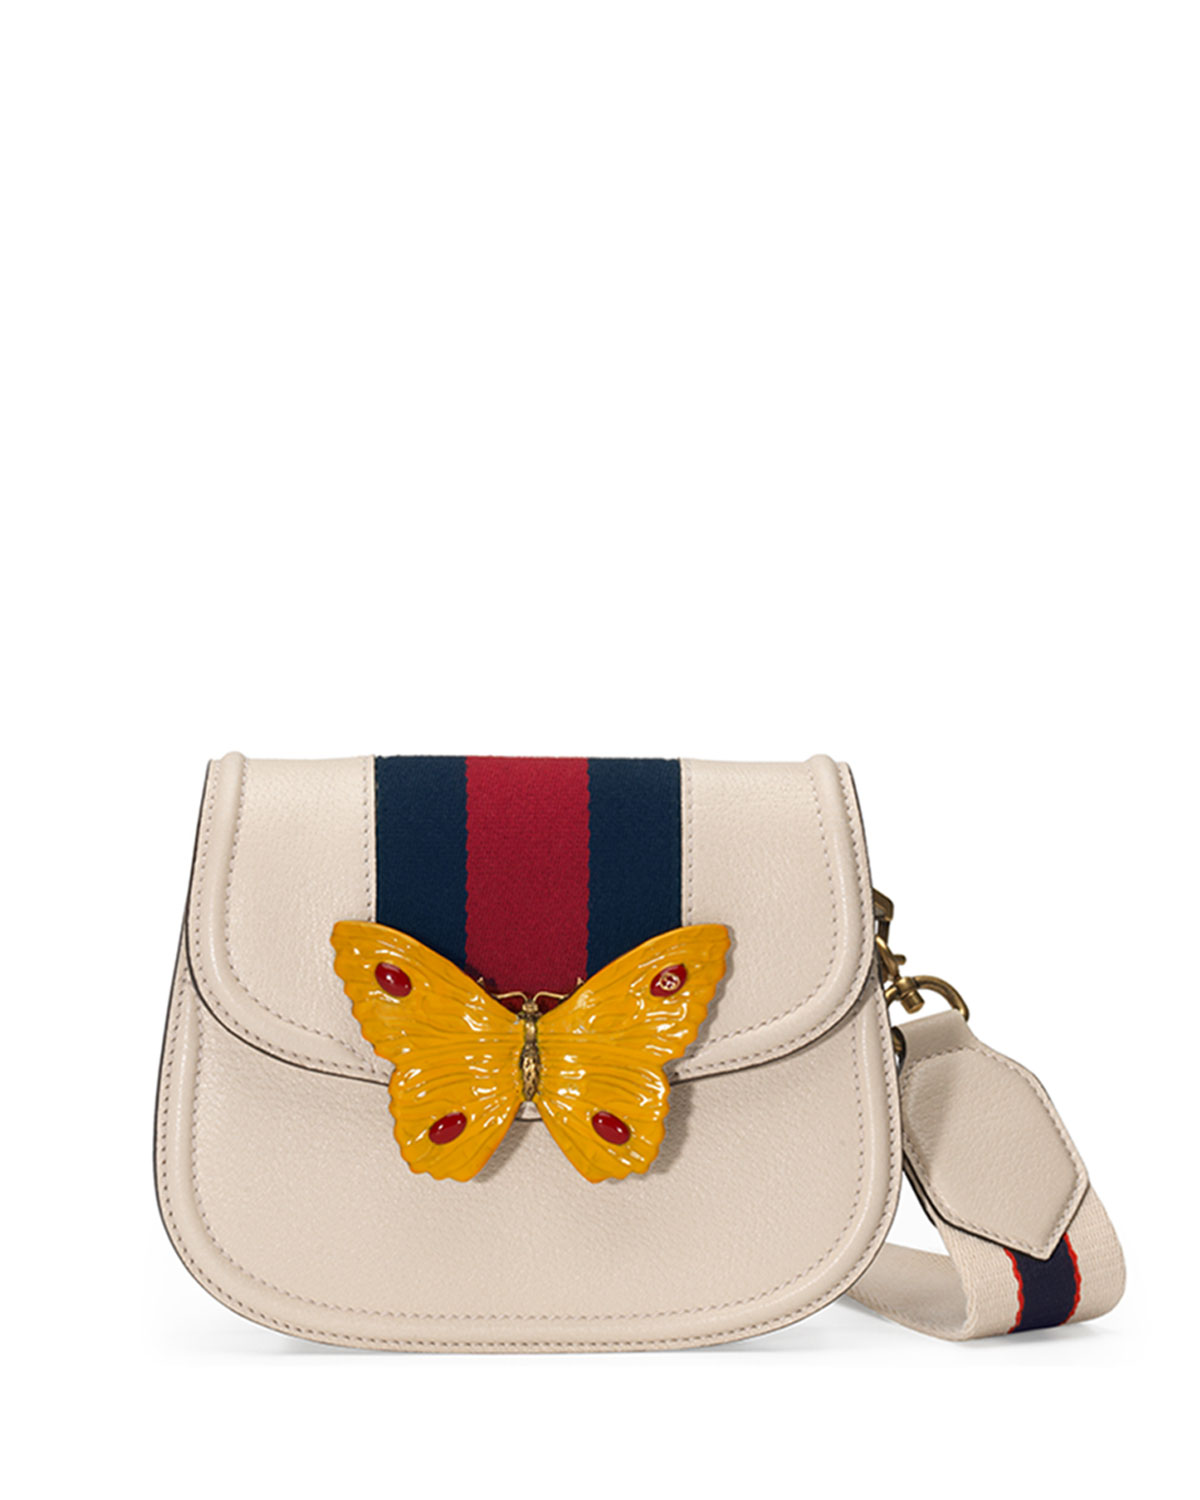 872d07d36c2 Gucci Linea Totem Small Leather Shoulder Bag with Butterfly   Web Strap